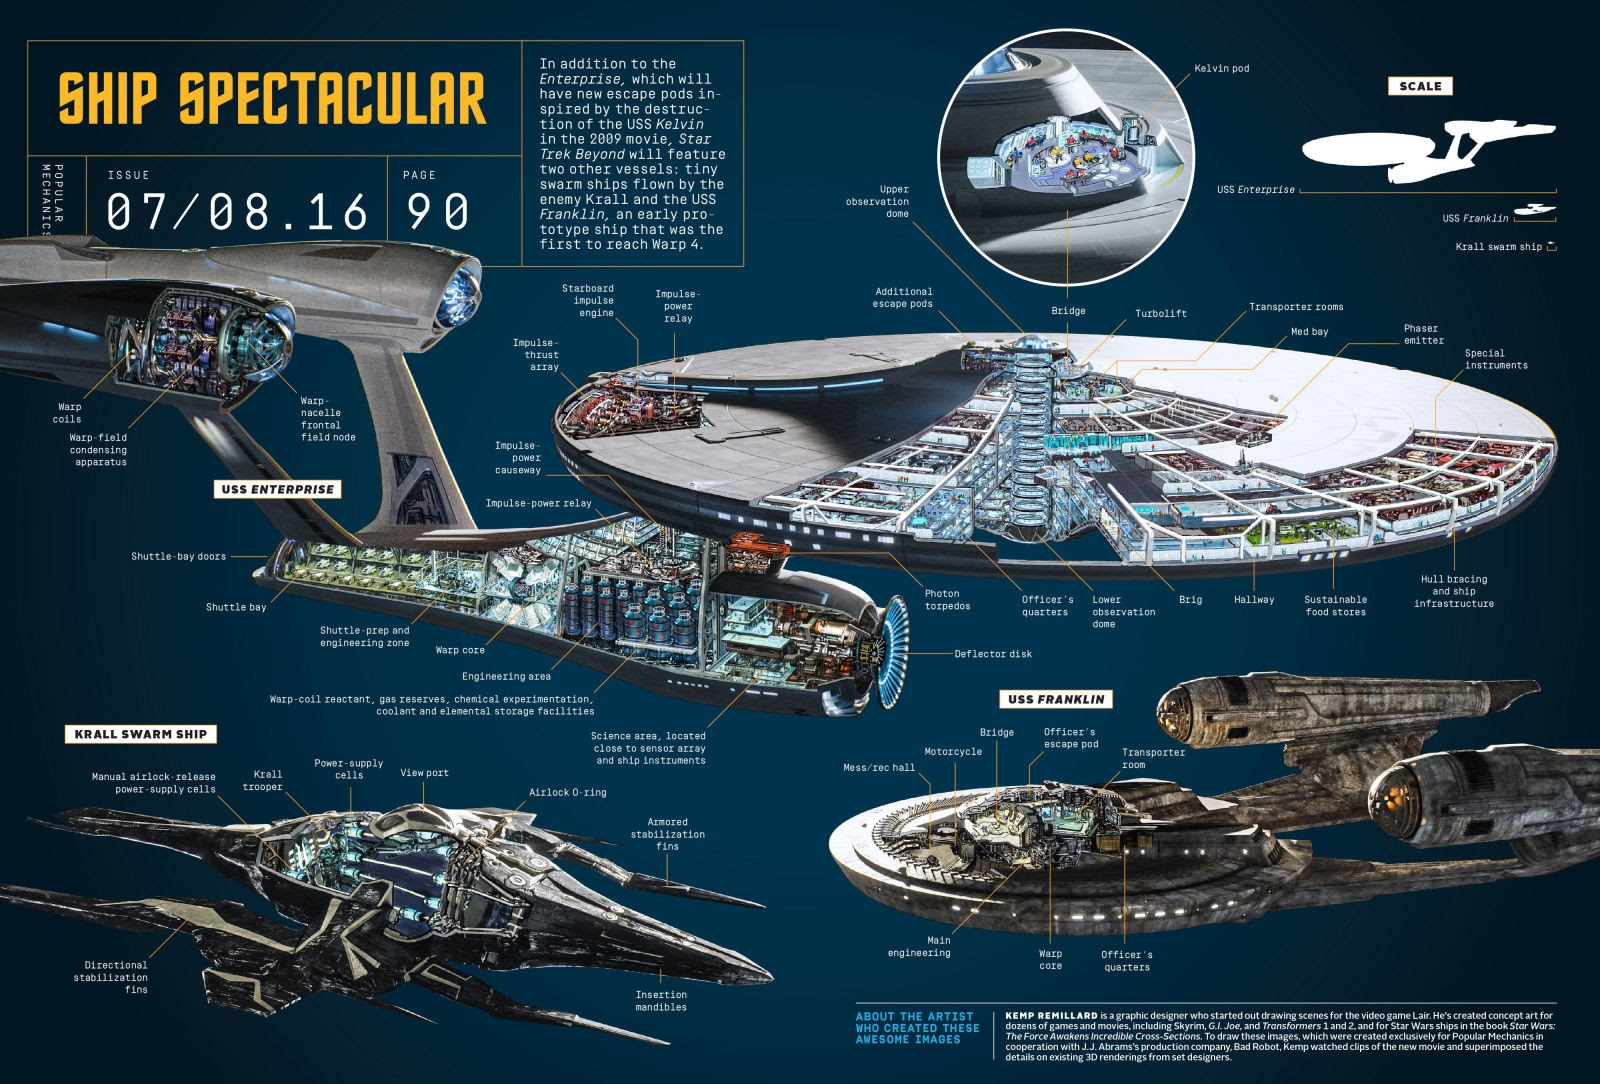 Uss Enterprise Diagram 2006 Pontiac G6 Ignition Switch Wiring The Trek Collective New Starship Cross Sections And